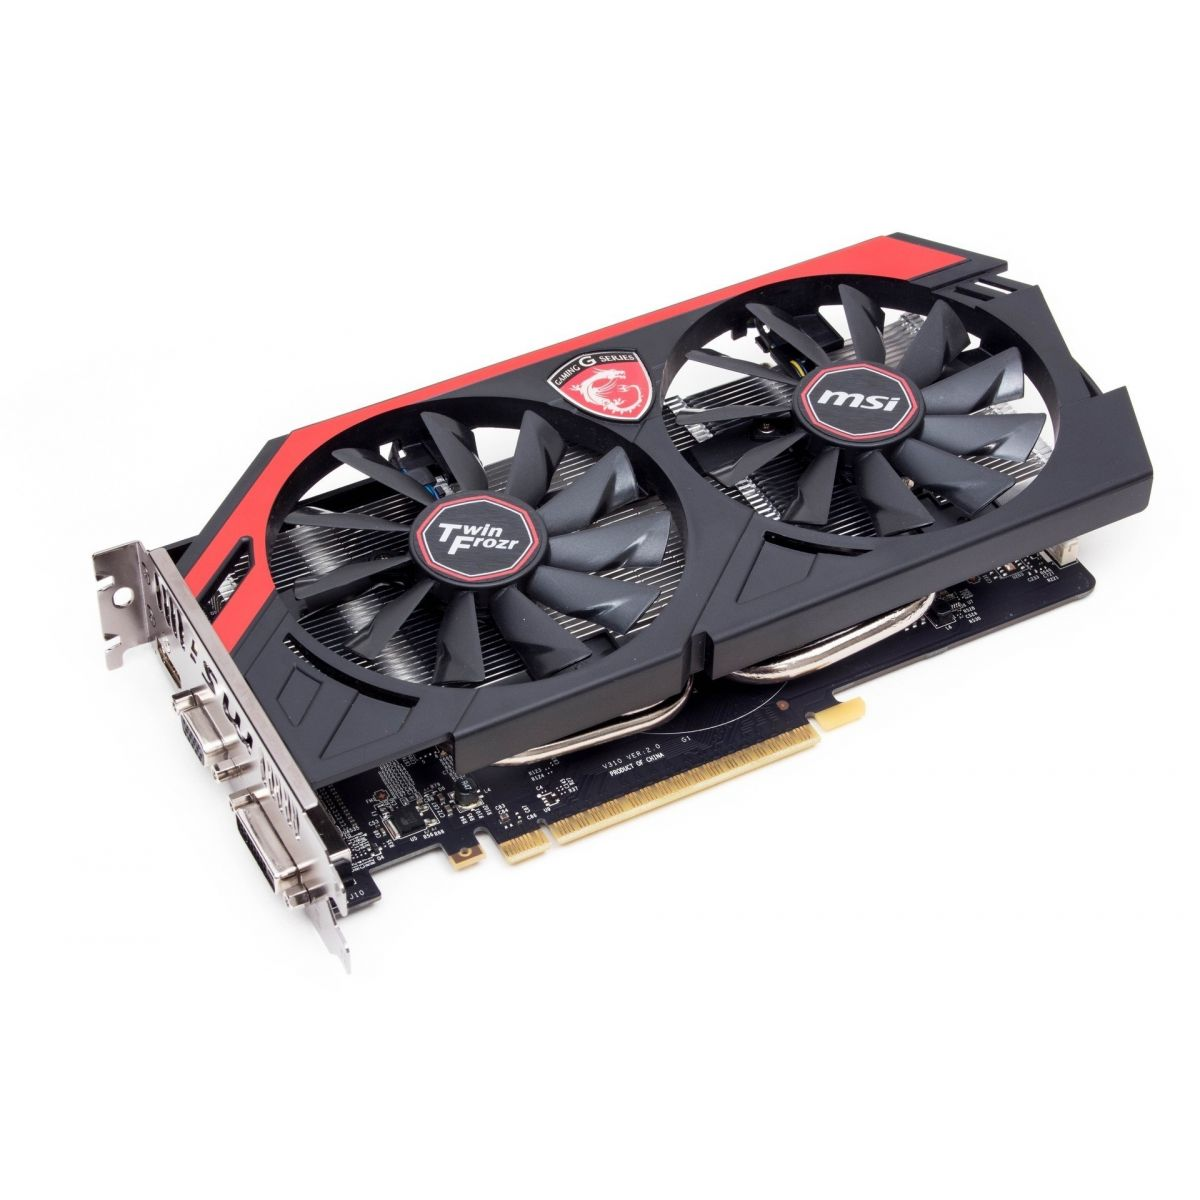 Placa de Vídeo Geforce GTX750Ti OC Edition Twin Gaming 2GB DDR5 128Bit N750Ti TF 2GD5/OC - MSI